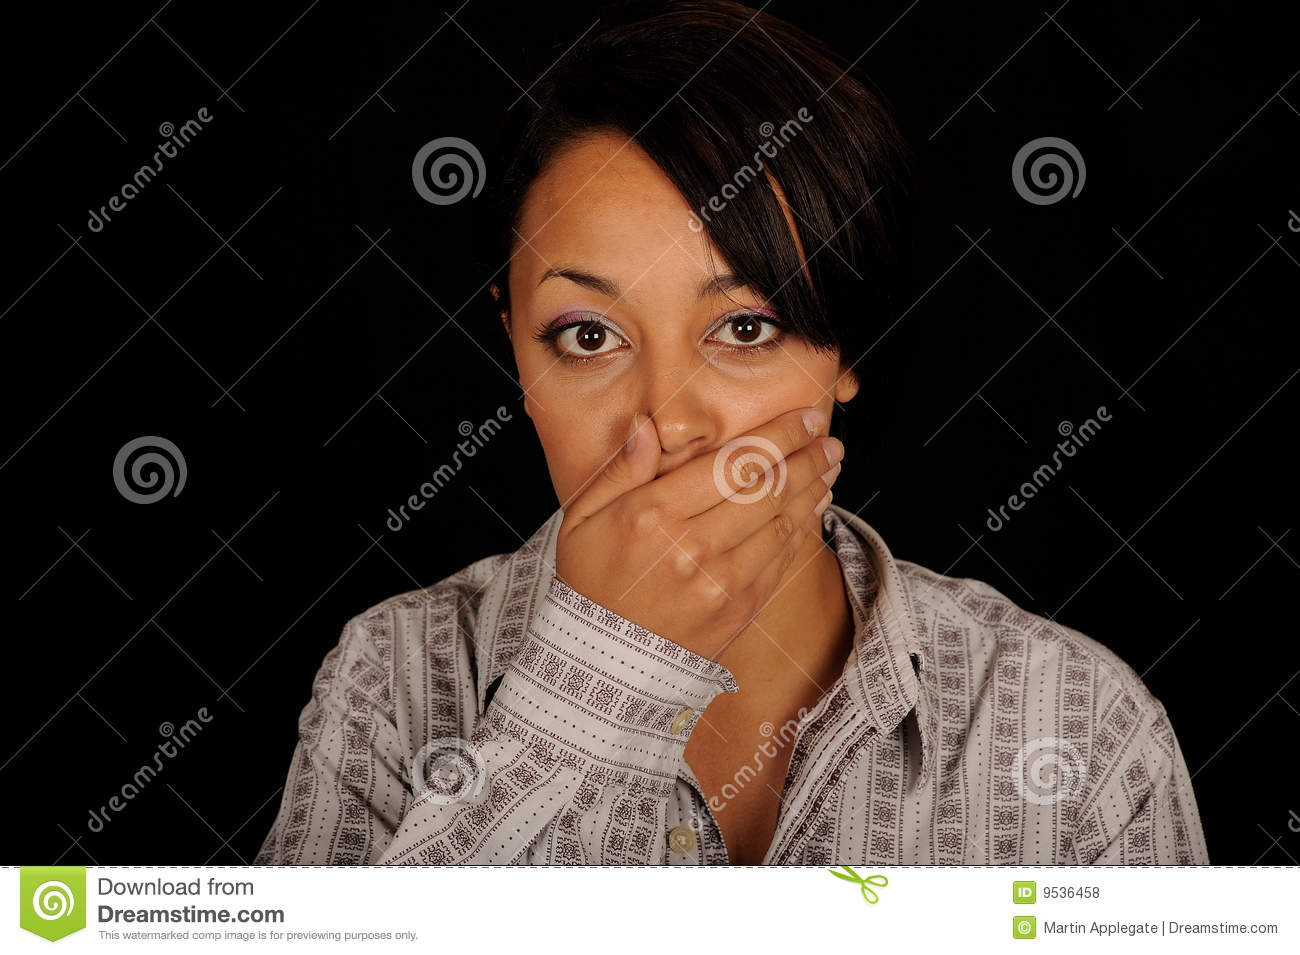 Yawning Woman Royalty Free Stock Photos - Image: 9536458